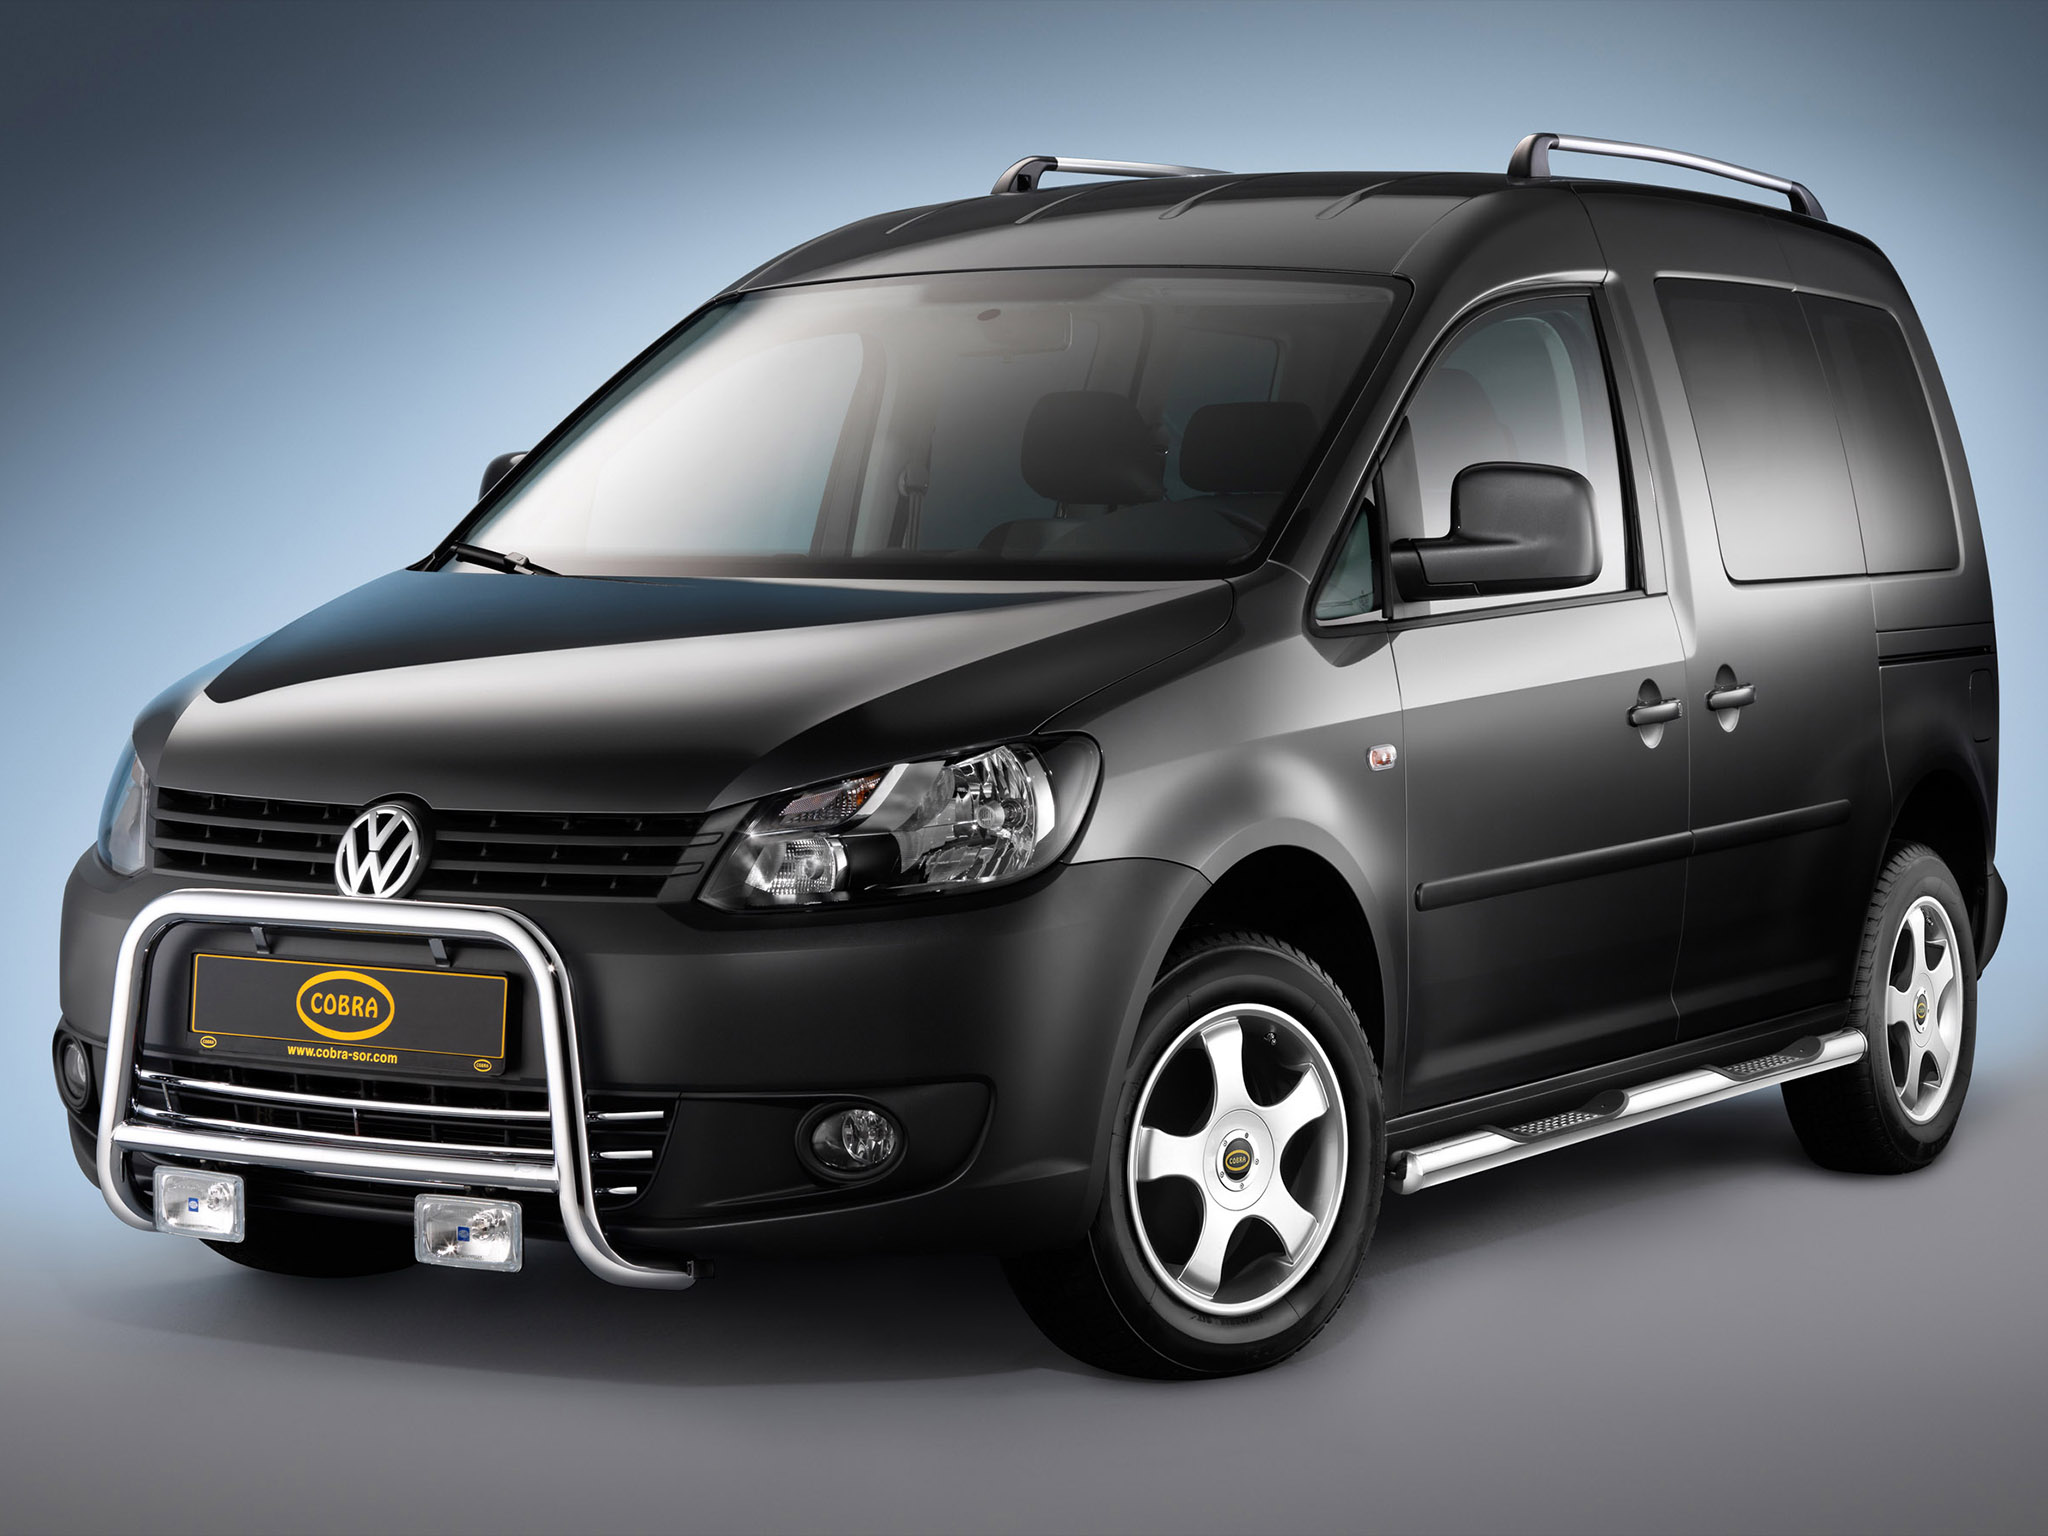 Cobra Volkswagen Caddy 2011 Cobra Volkswagen Caddy 2011 Photo 05 ...